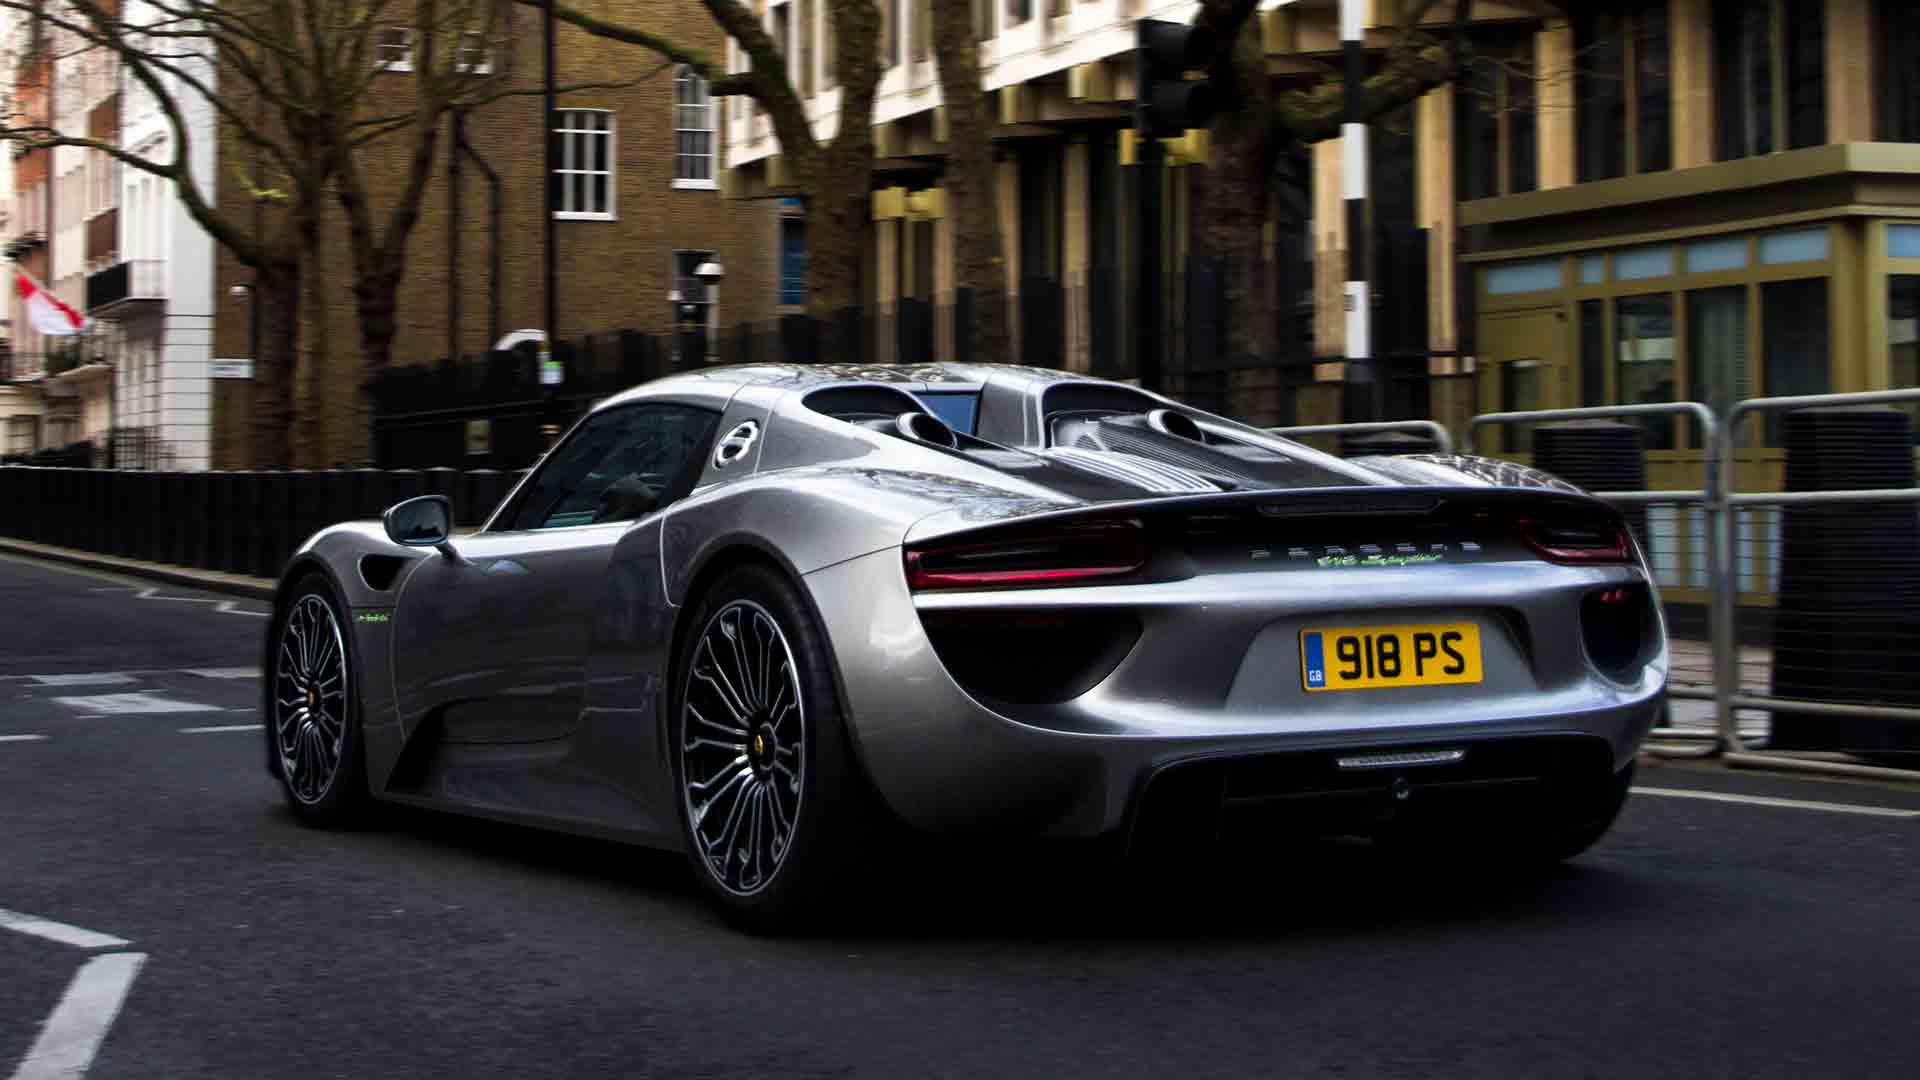 Porsche 718 Spyder in London